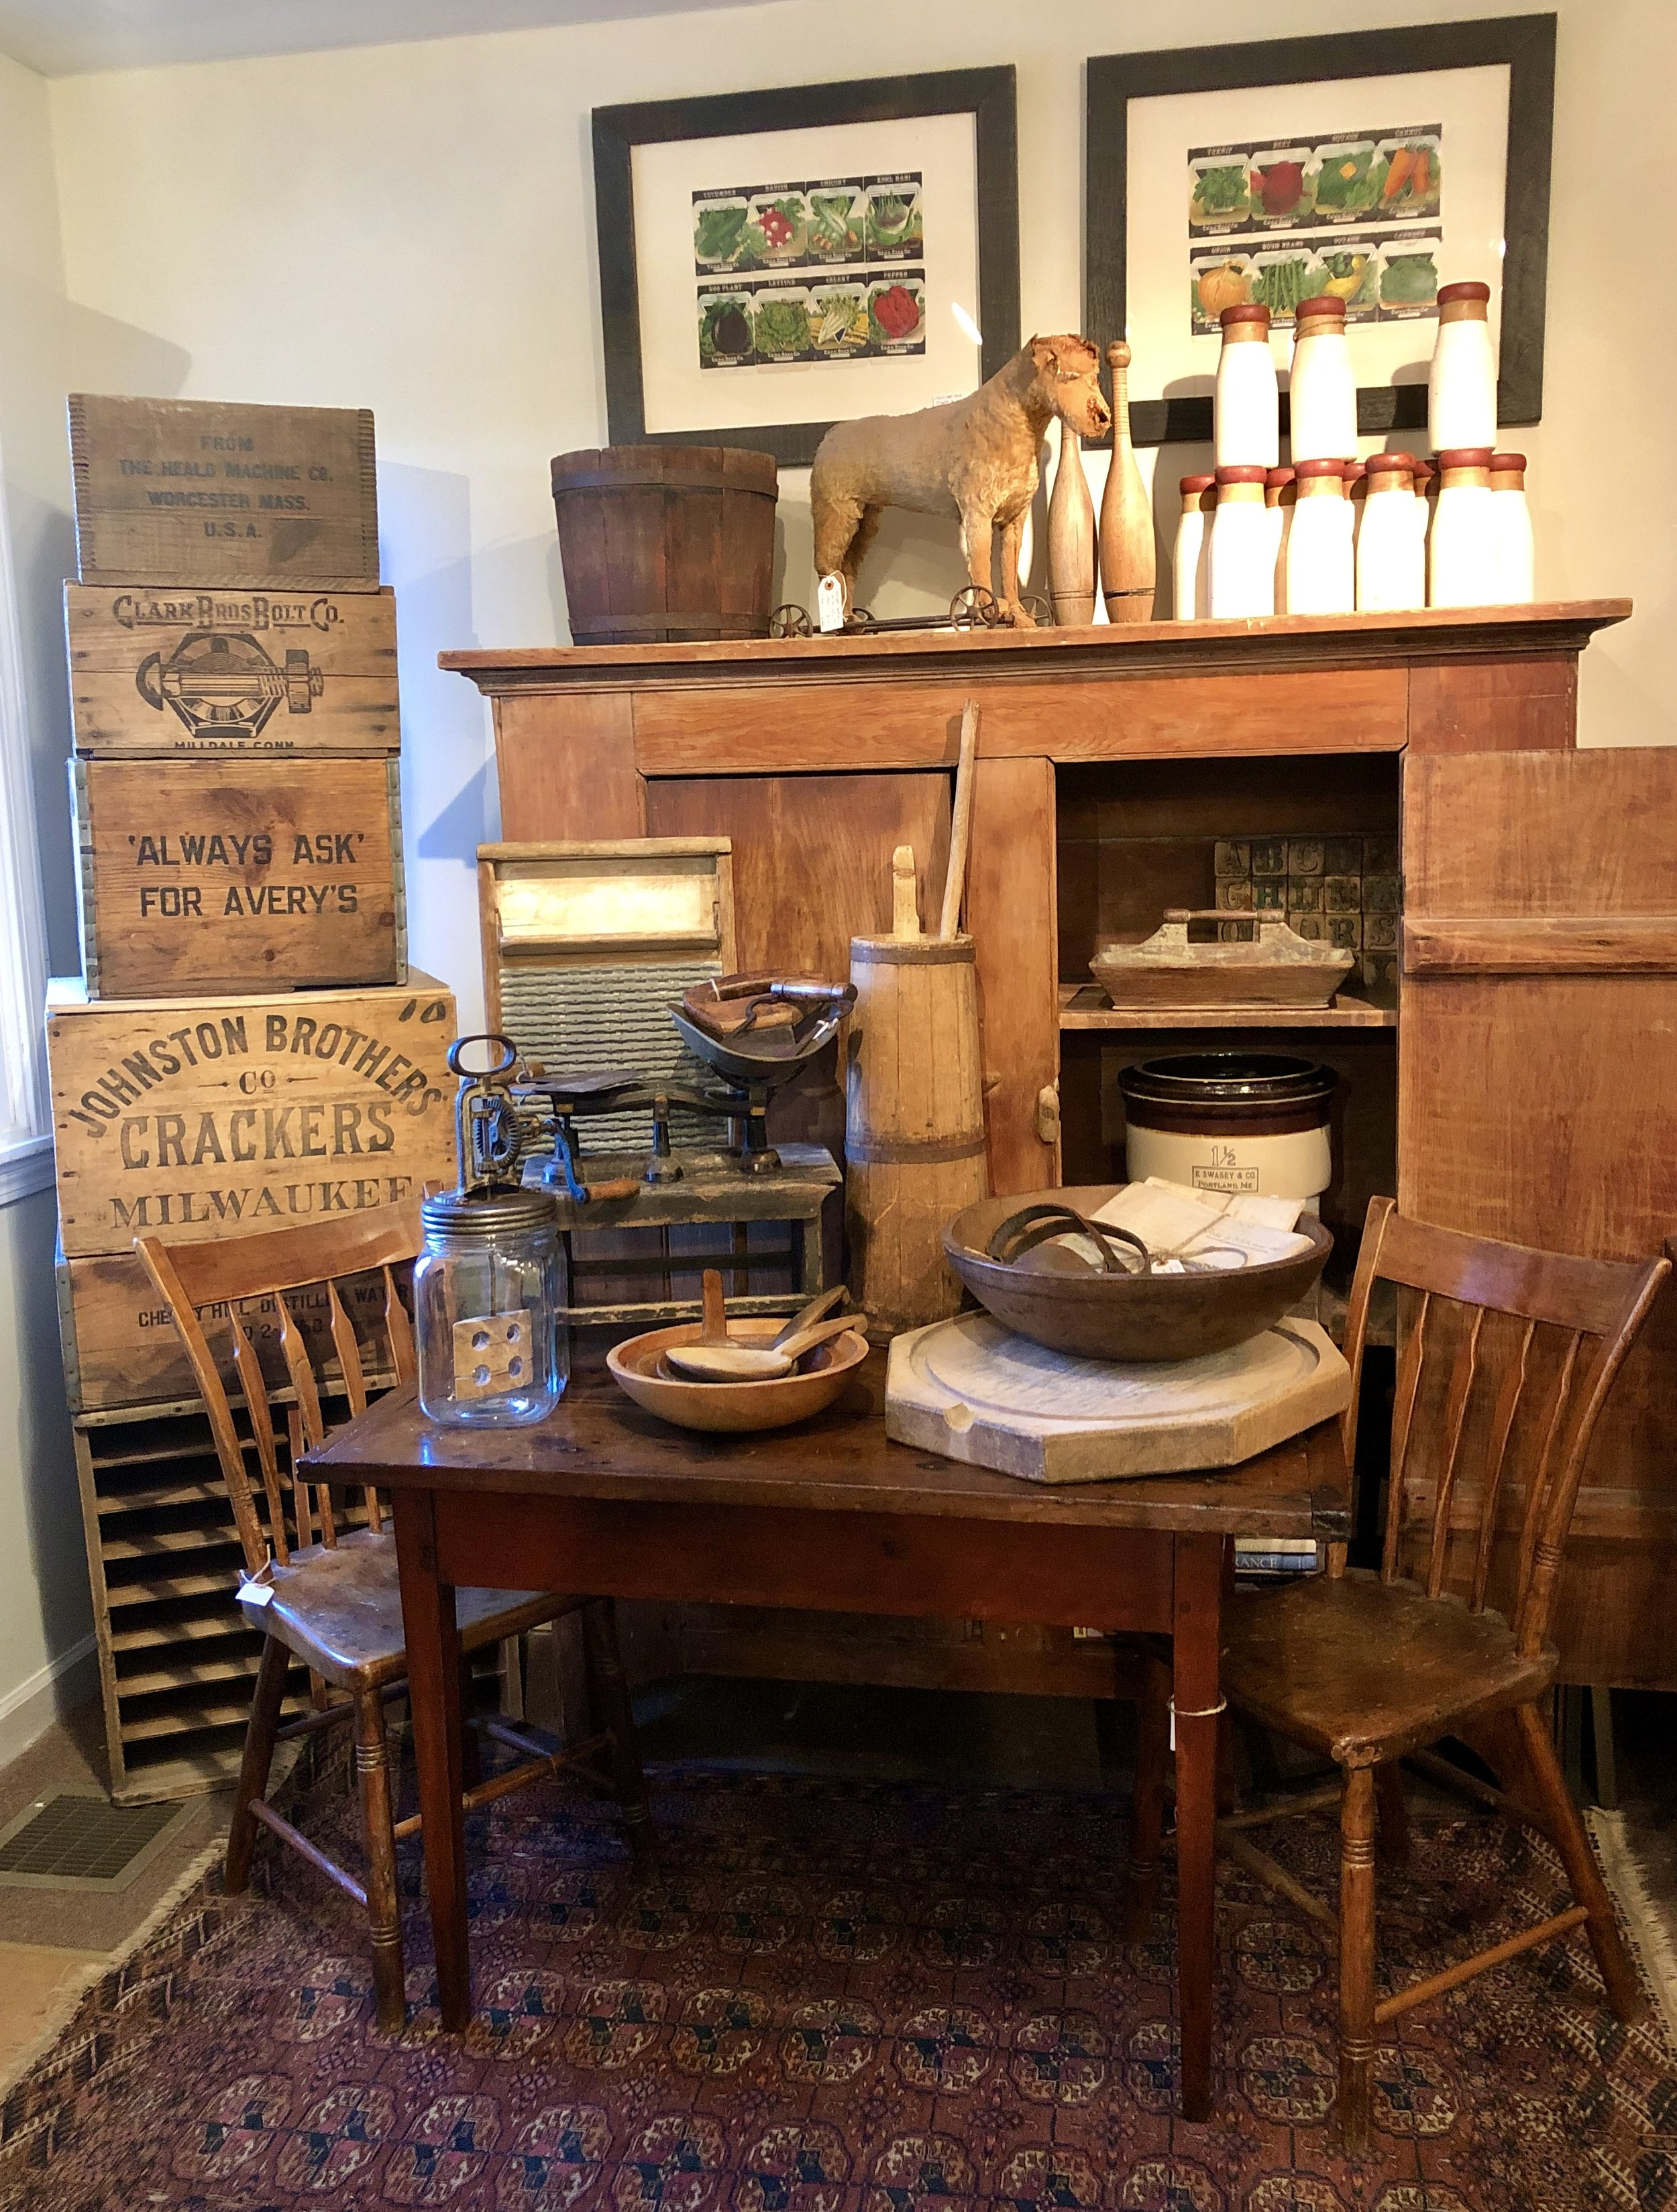 One of my favorite groupings. A quintessential collection of farmhouse furniture and accessories.